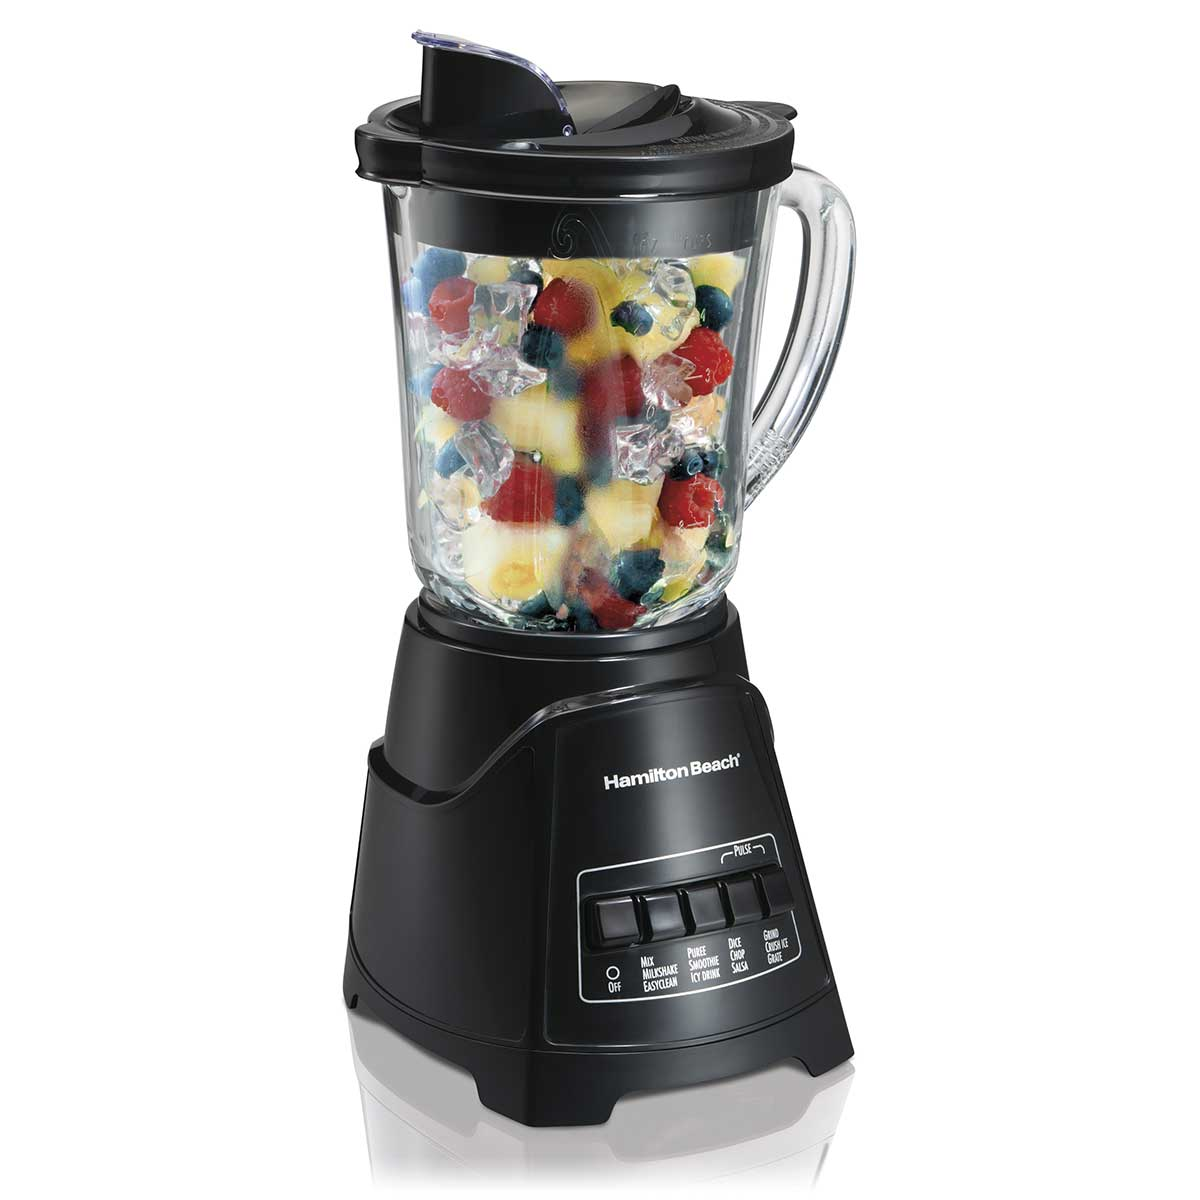 Power Elite Multi-Function Blender with Mess-free 40oz Glass Jar, 700W Black (58146)